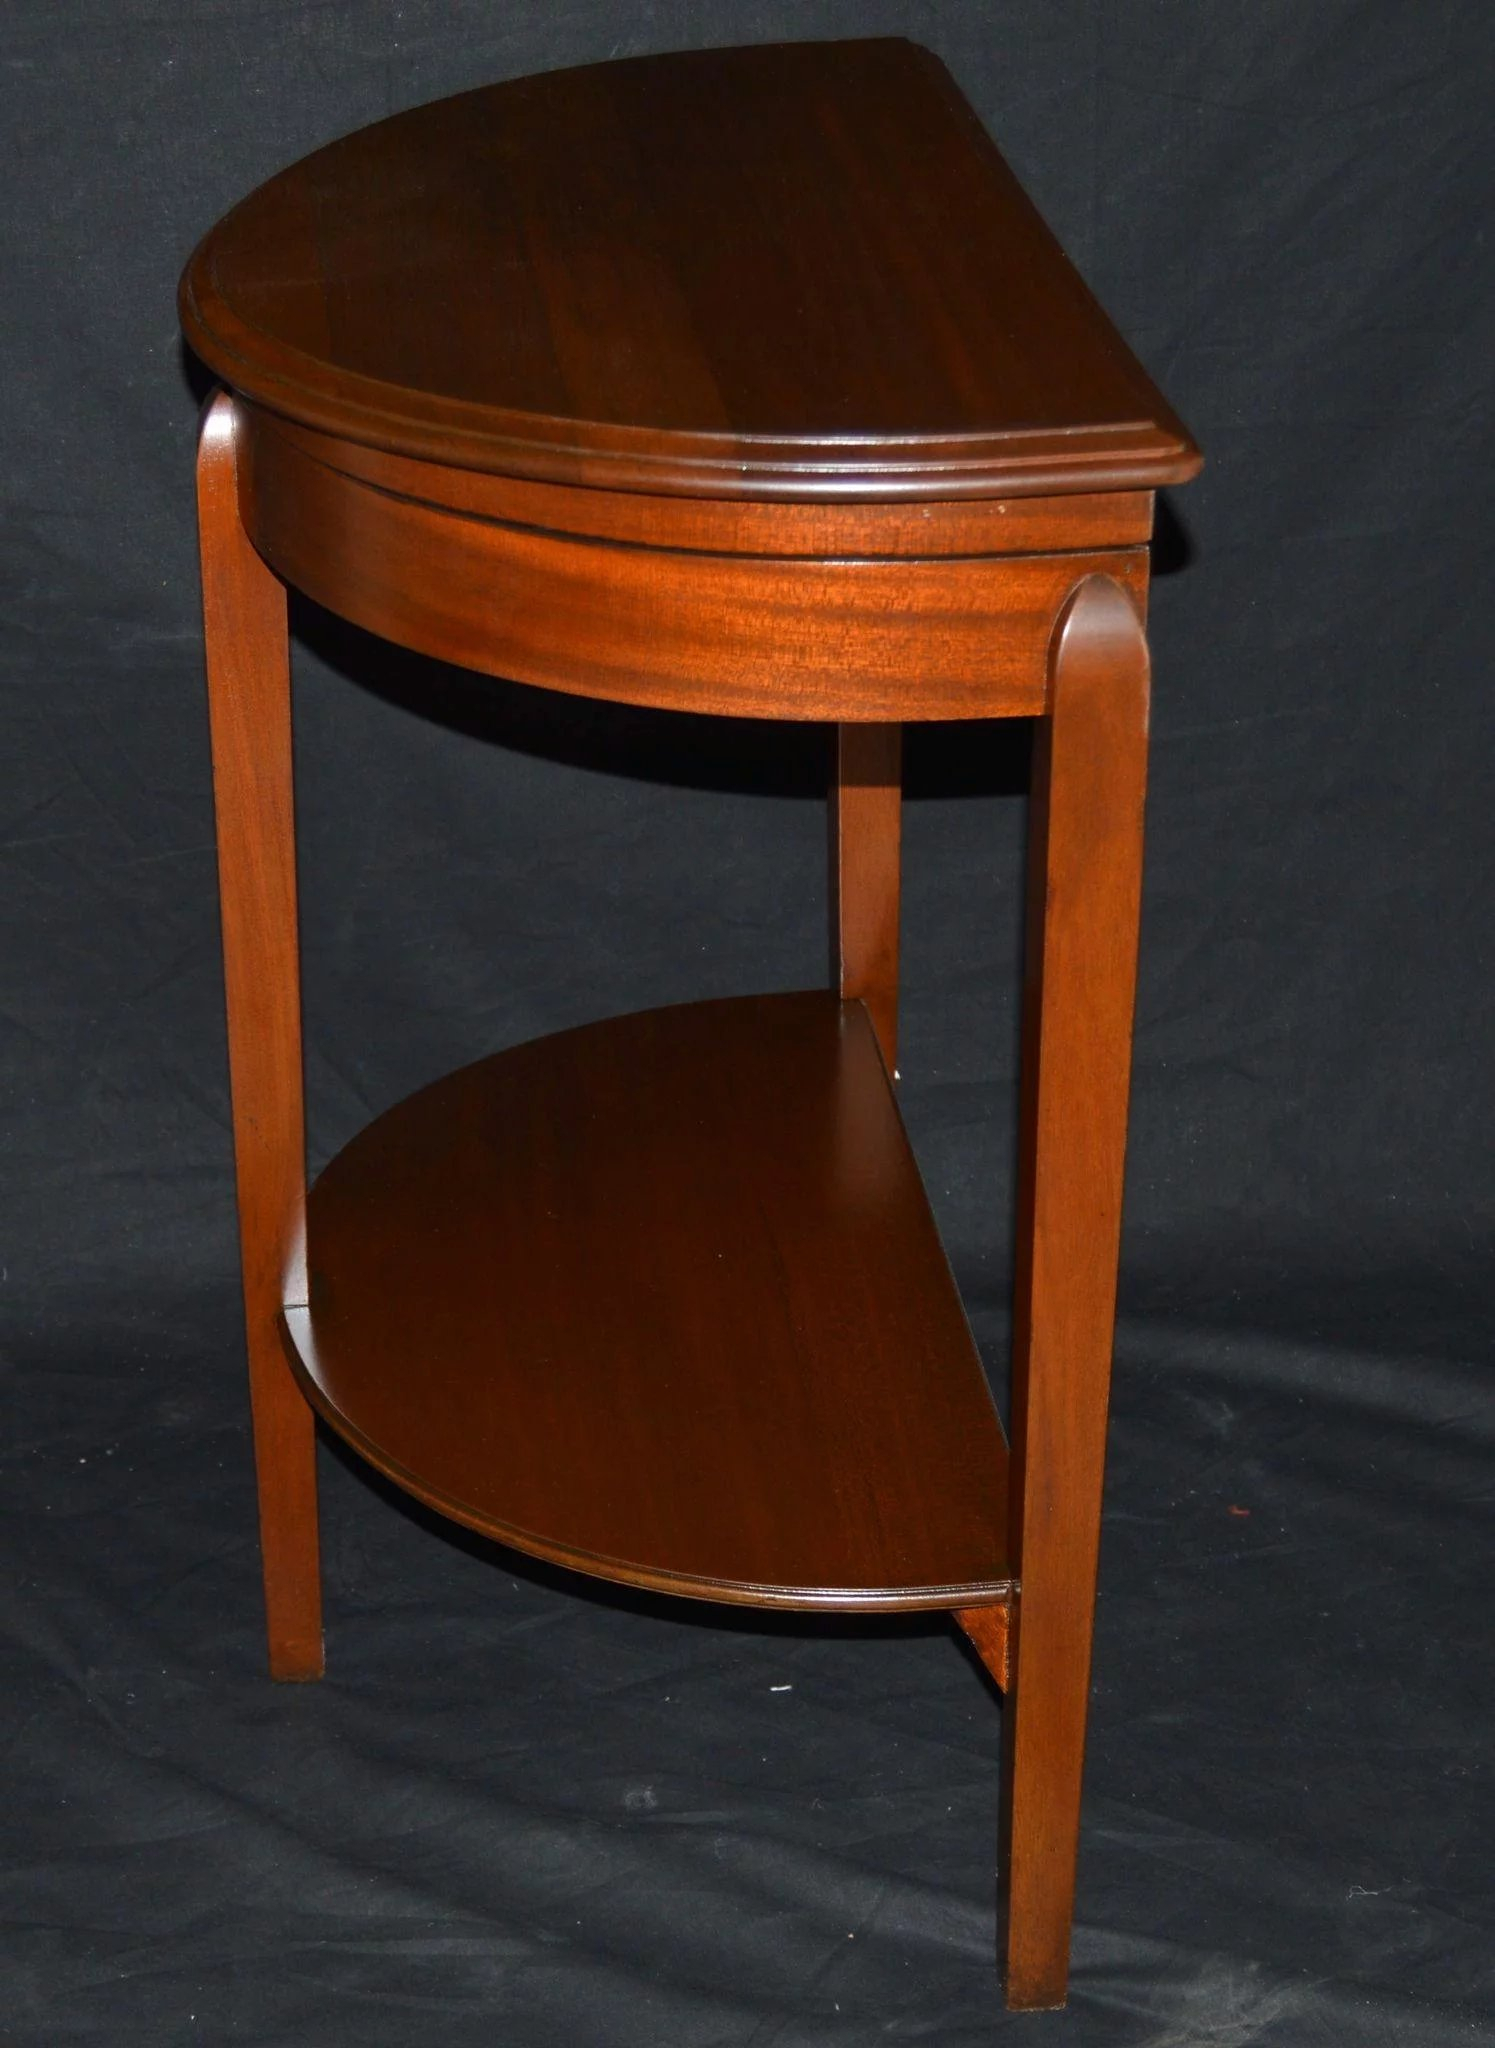 Mahogany Flatware/silver Storage Demilune Console Table : Hollin In Clairemont Demilune Console Tables (View 18 of 30)